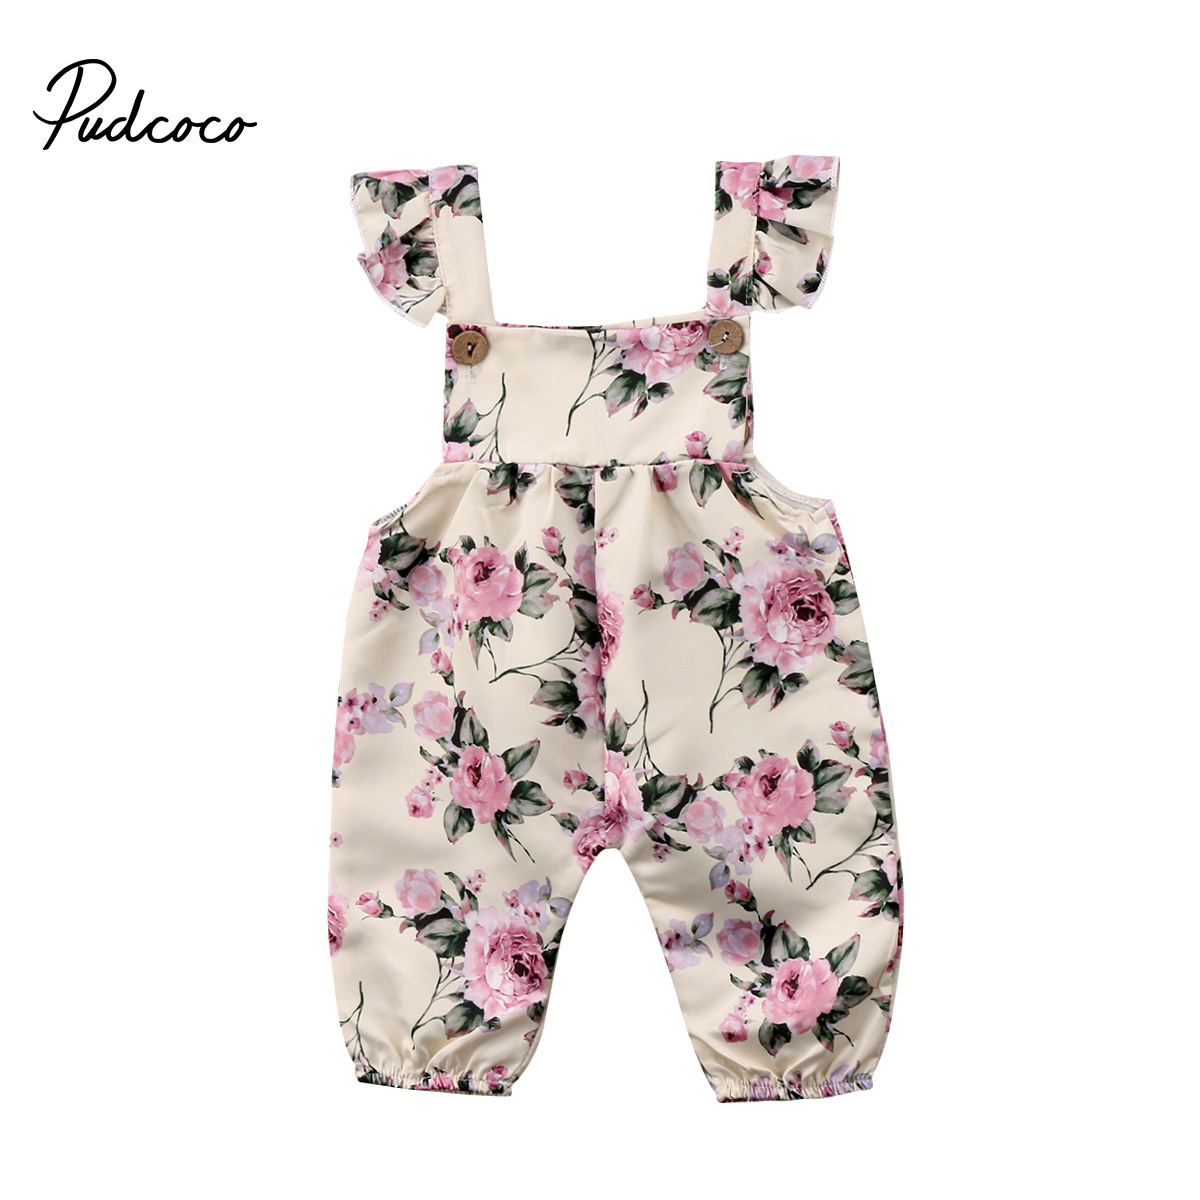 Pudcoco Cute Newborn Infant Baby Girls Strap Flower Cotton Romper Jumpsuit Playsuit One-Pieces Outfits Clothes 0-24M pudcoco newborn infant baby girls clothes short sleeve floral romper headband summer cute cotton one piece clothes